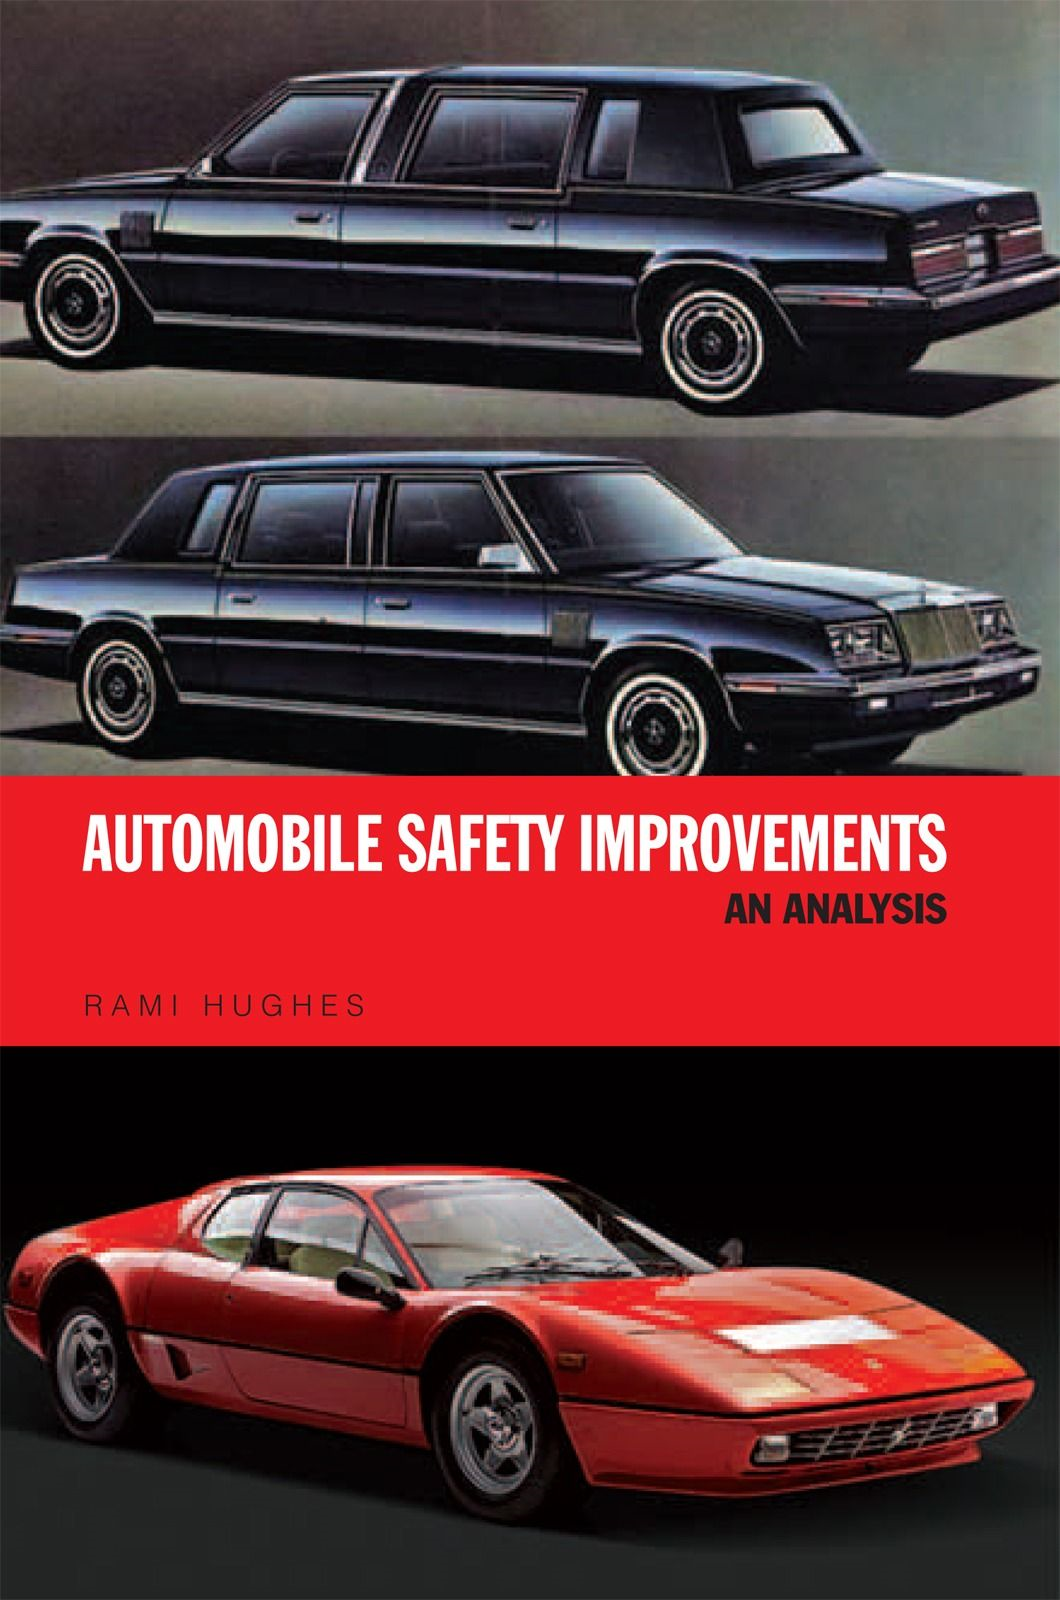 Automobile Safety Improvements: An Analysis